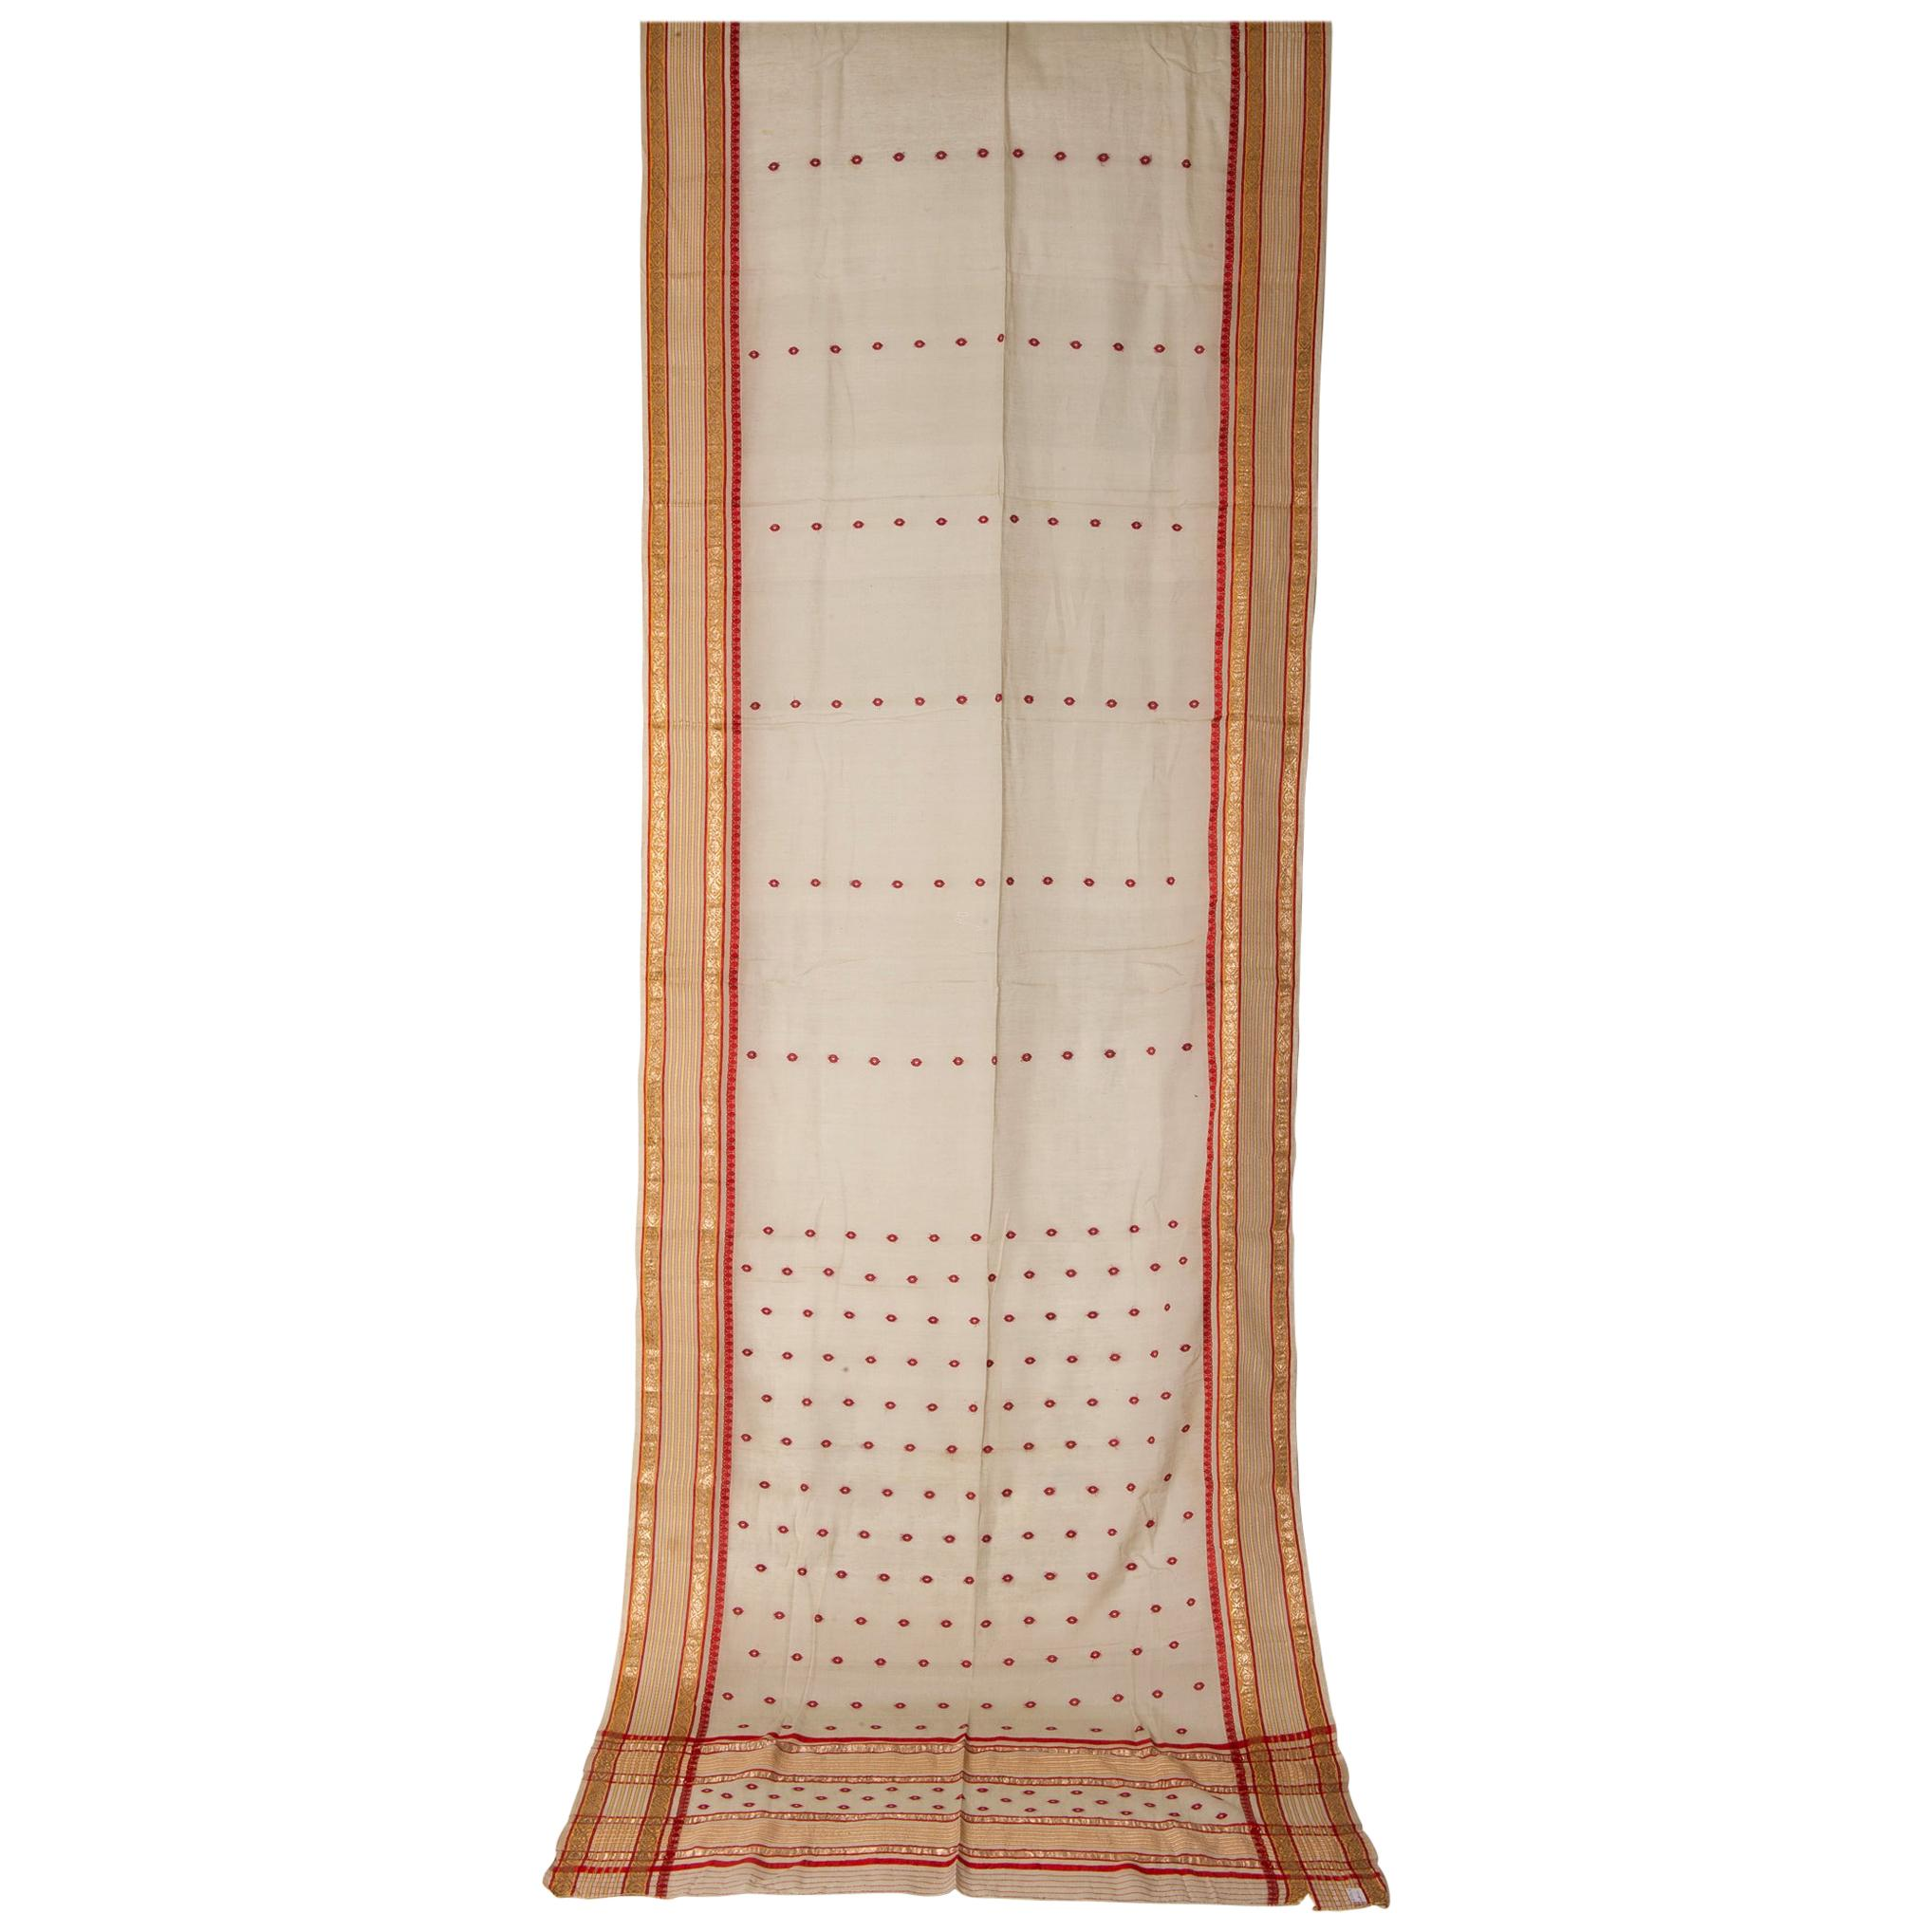 Indian Sari Ivory, Red Coral and Gold for Curtains or Evening Dress